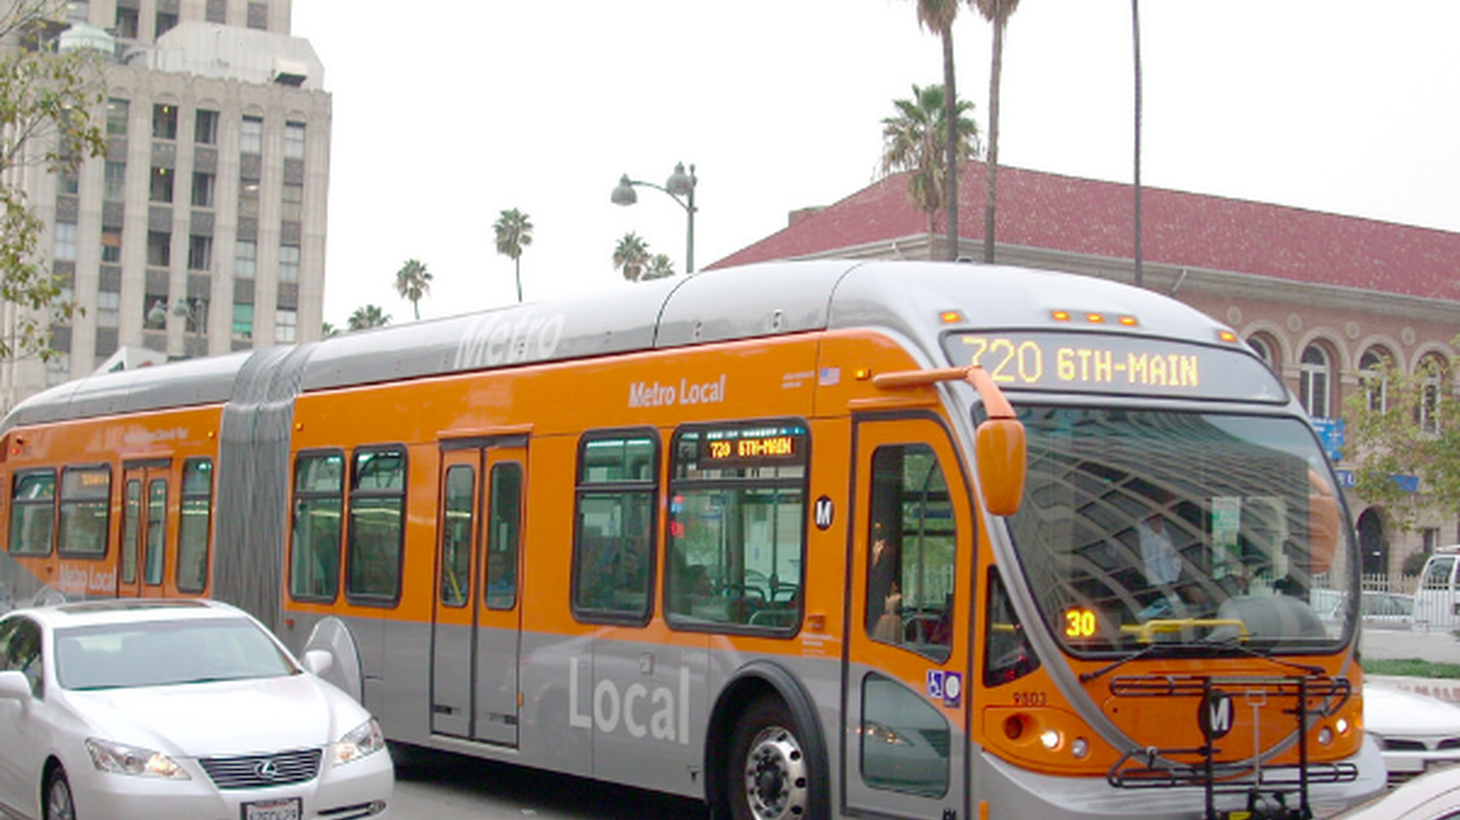 Last year, Los Angeles voters passed a measure to generate $120 billion for transit projects. But public transit ridership has dropped 15 percent over the last five years. Why aren't more commuters opting for the train or bus?